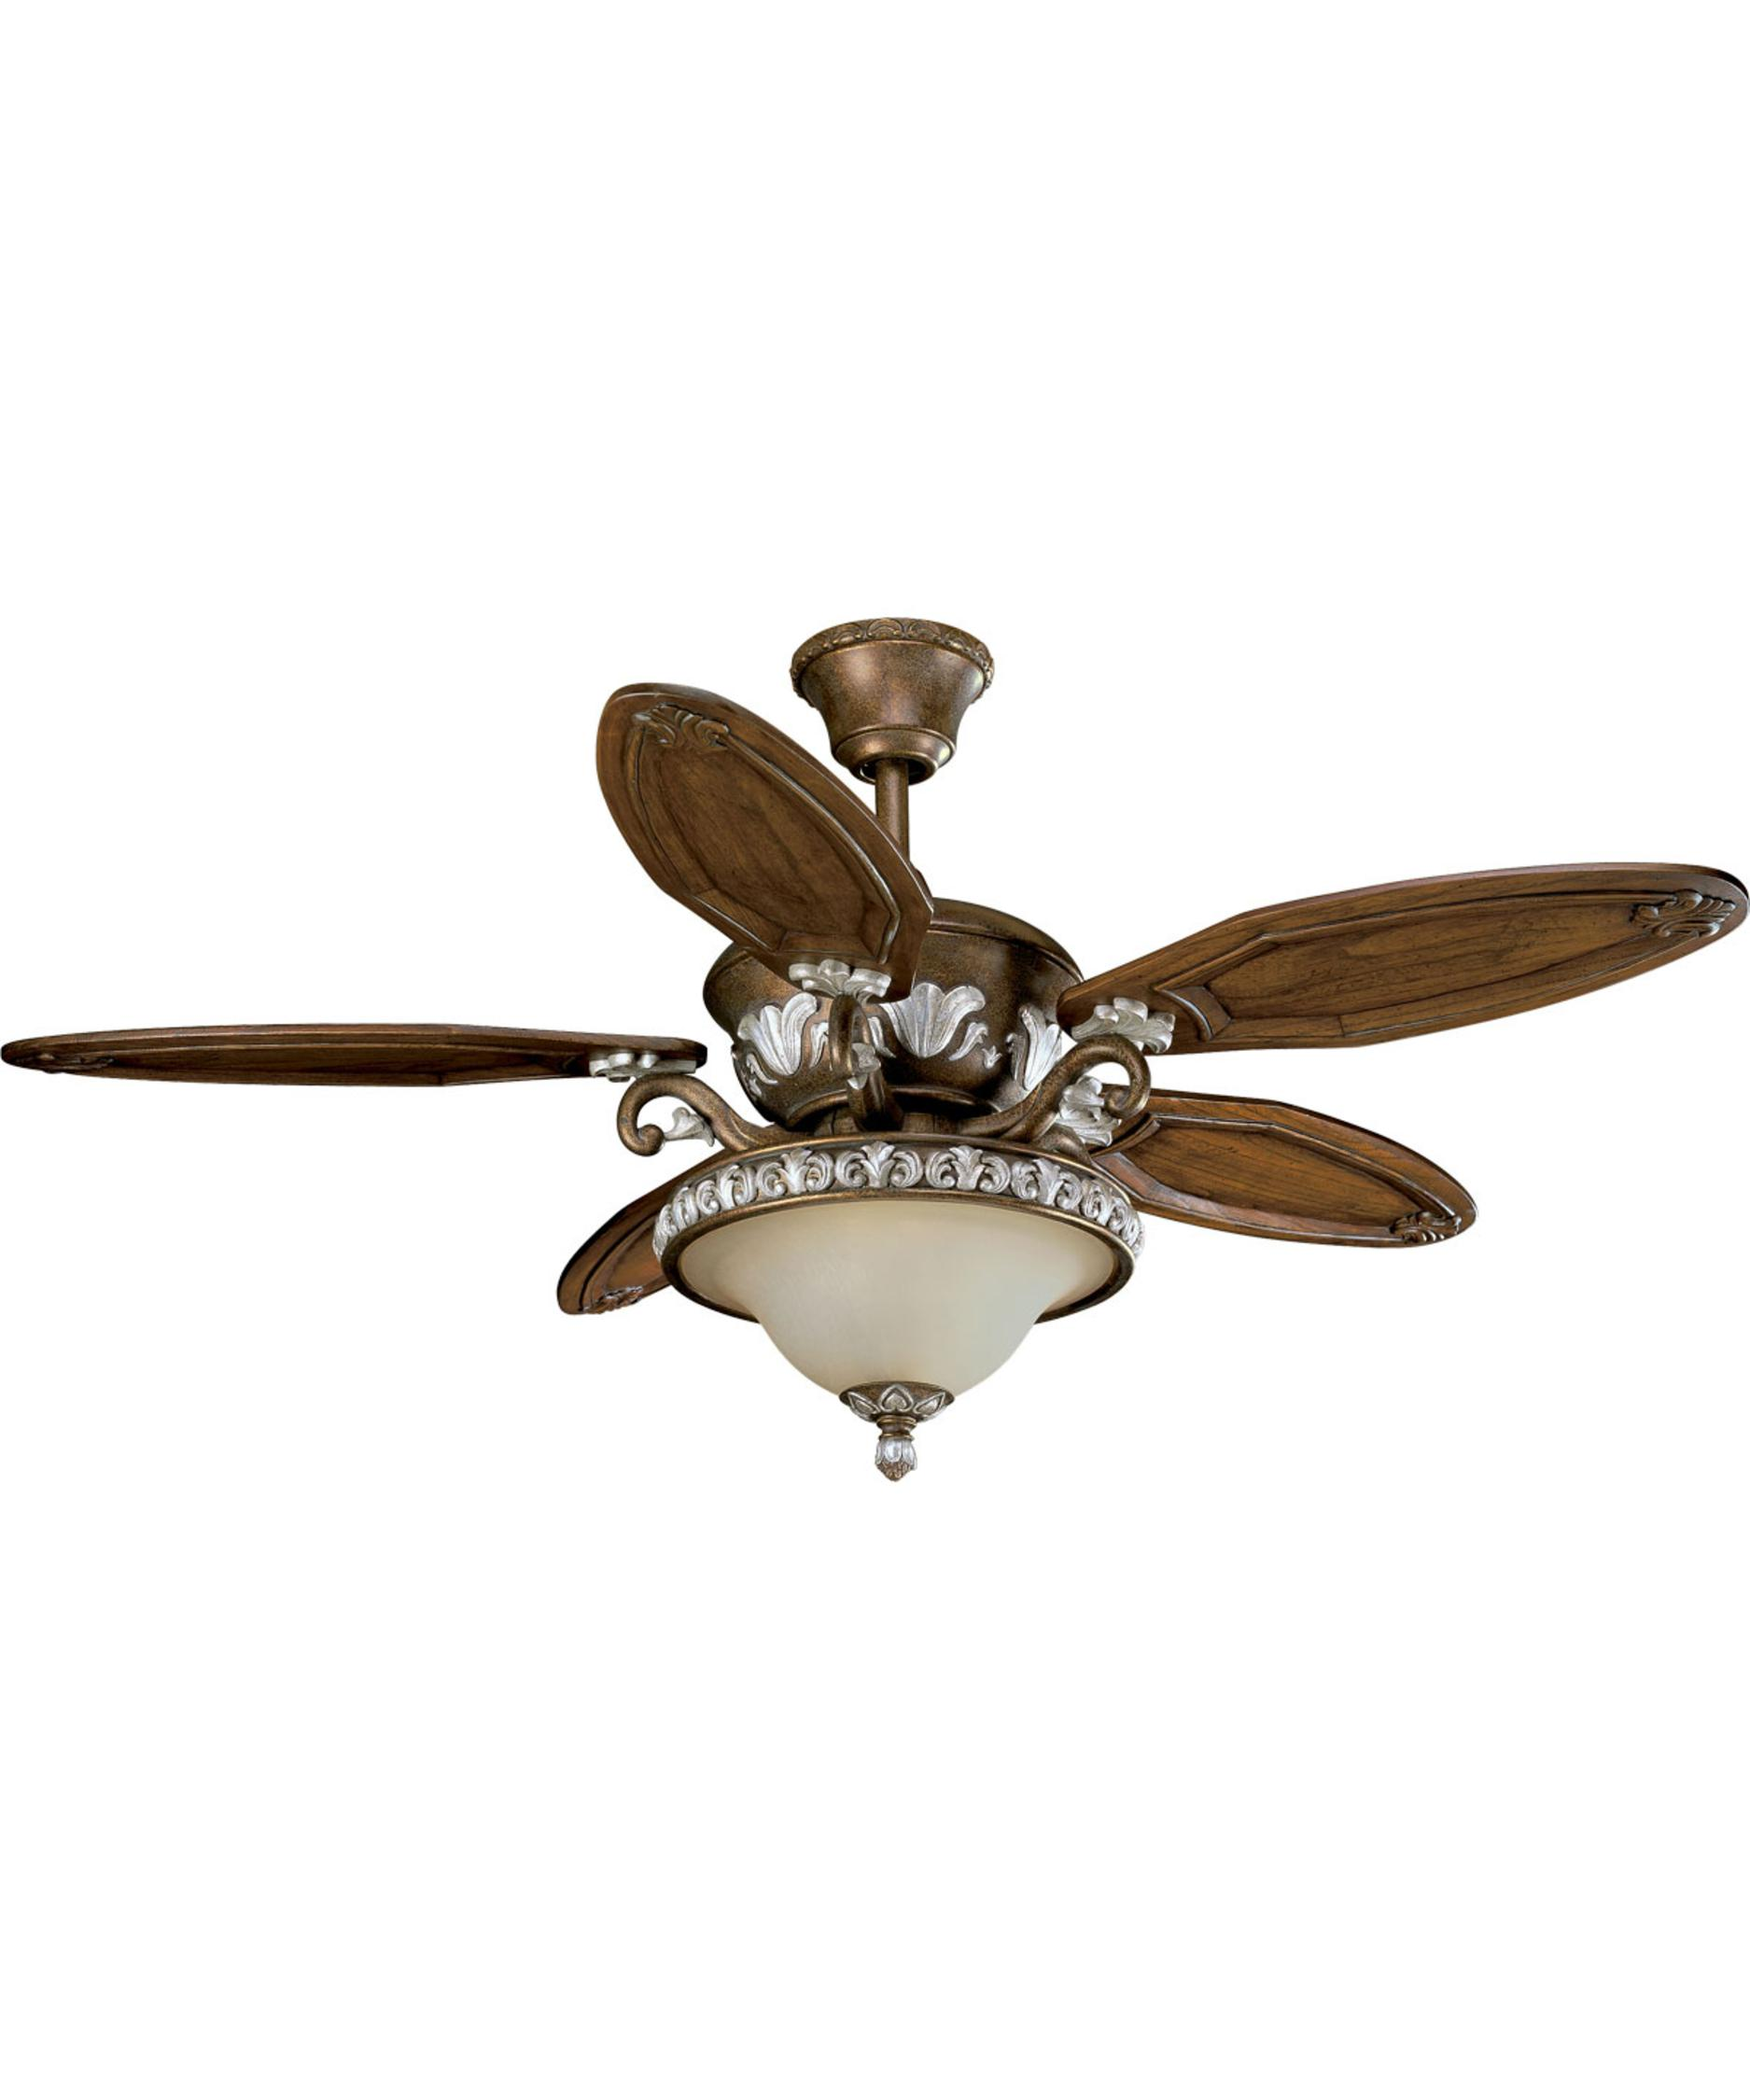 hight resolution of thomasville lighting p2505 carmel 54 inch 5 blade ceiling fan rh 1800lighting com ceiling fans with lights wiring diagram ceiling fan with remote wiring